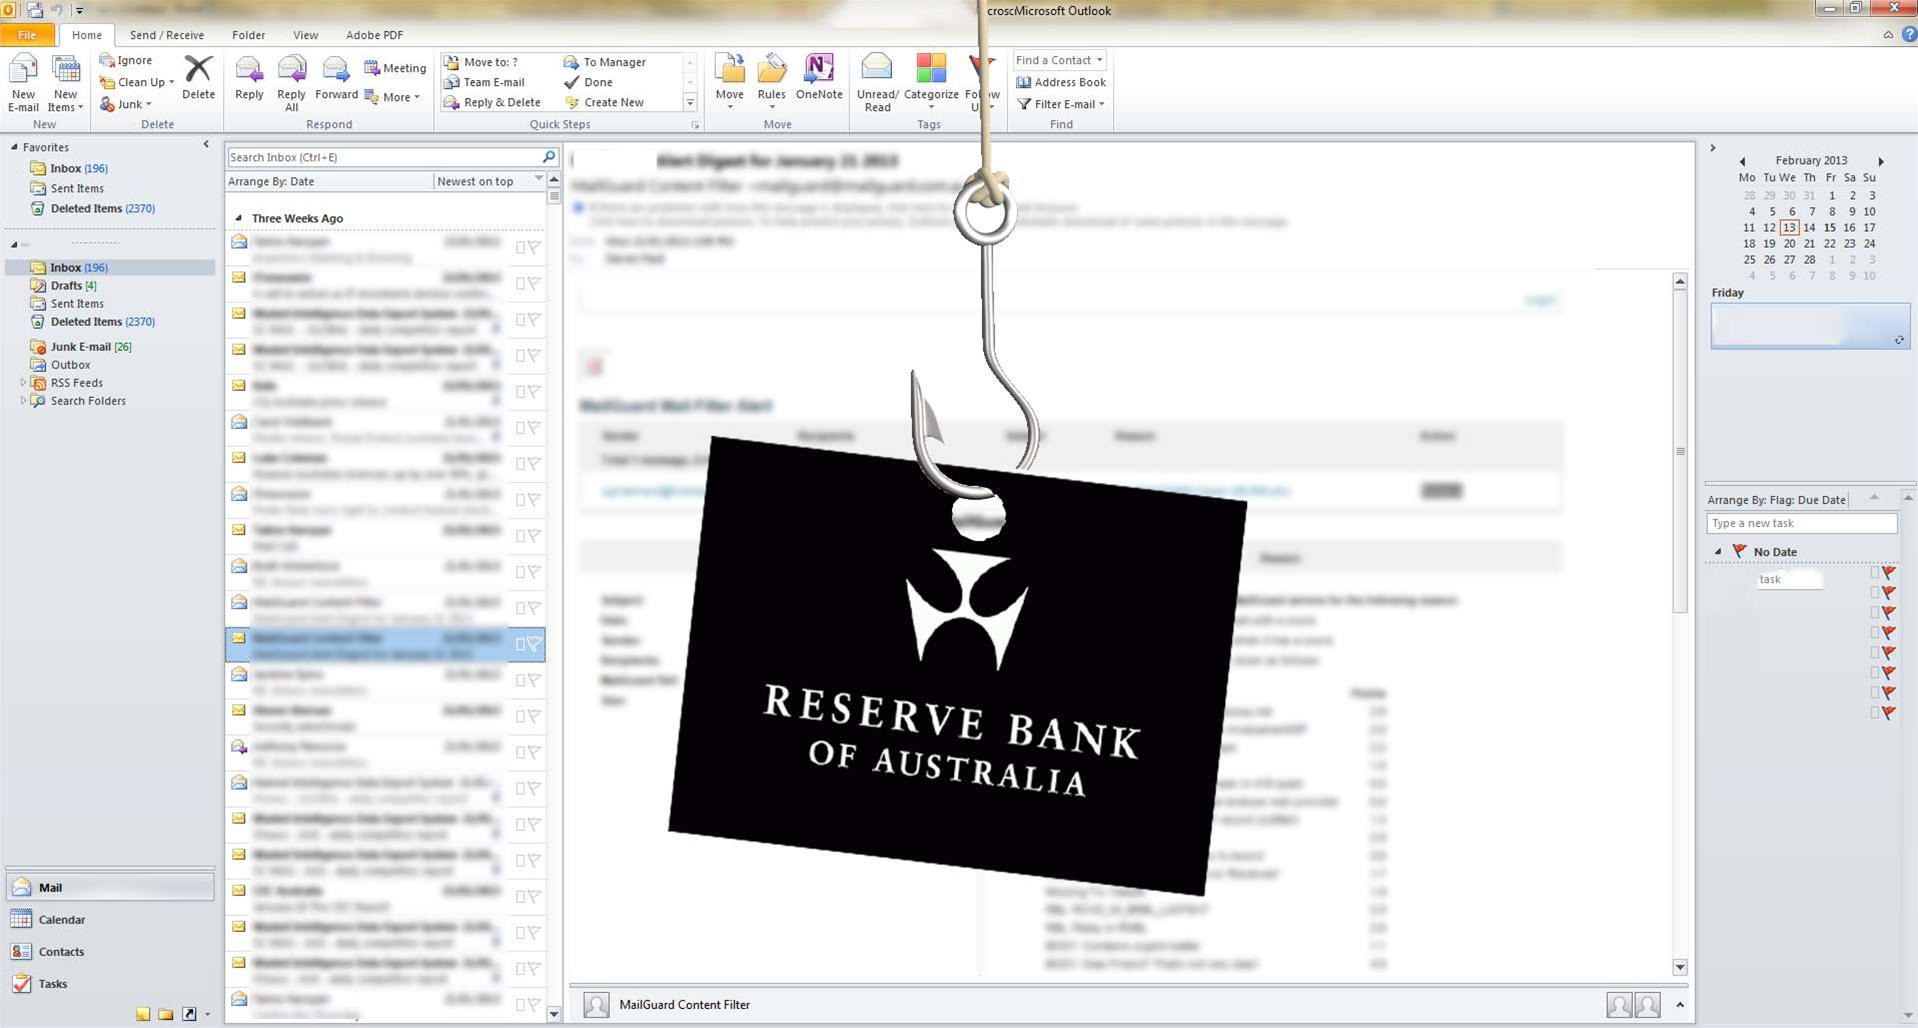 Chinese hackers infiltrated Reserve Bank